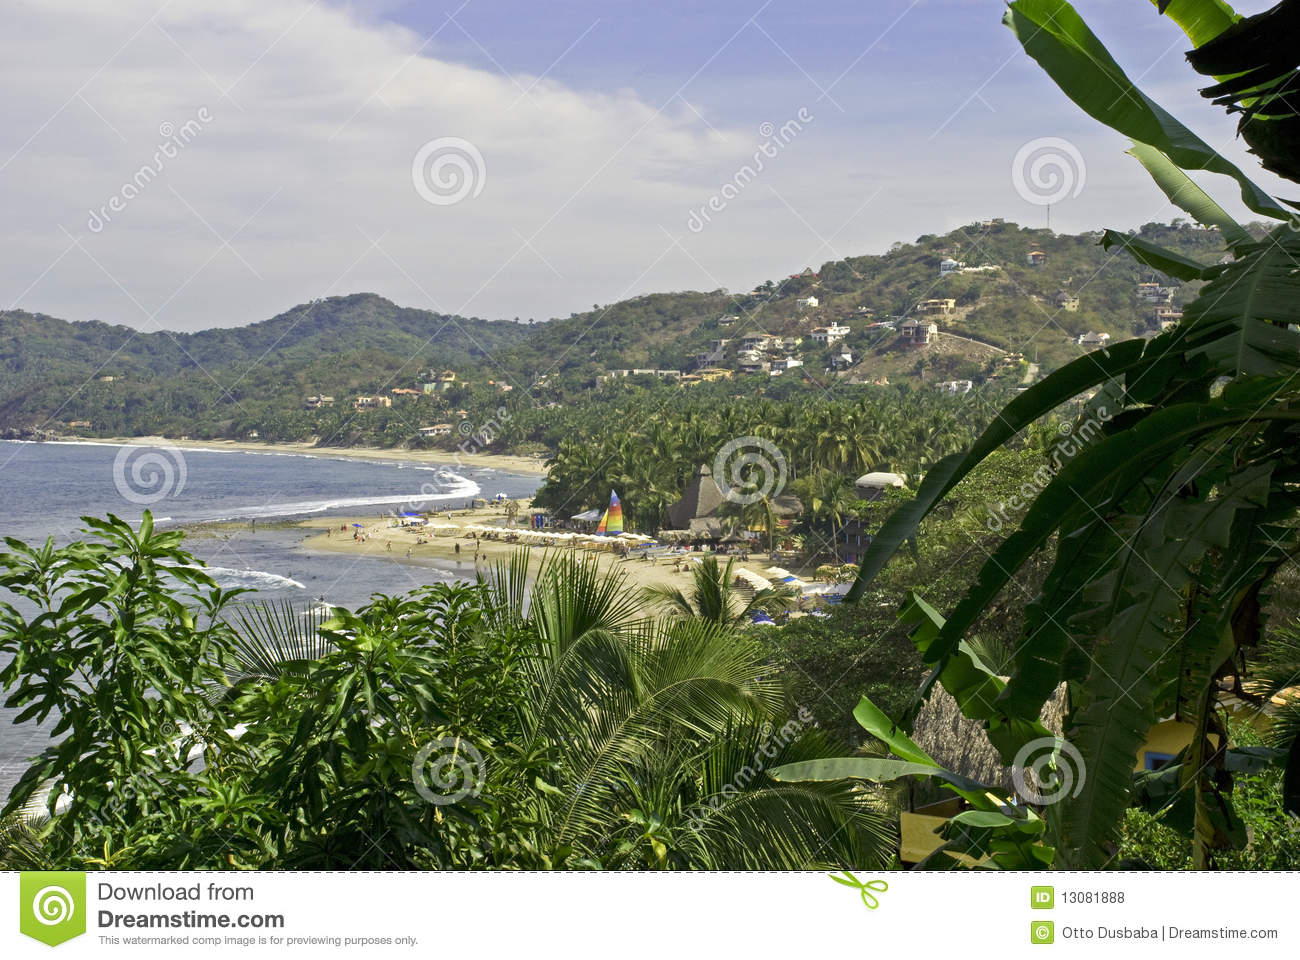 Picturesque beach on the Mexican Pacific Ocean